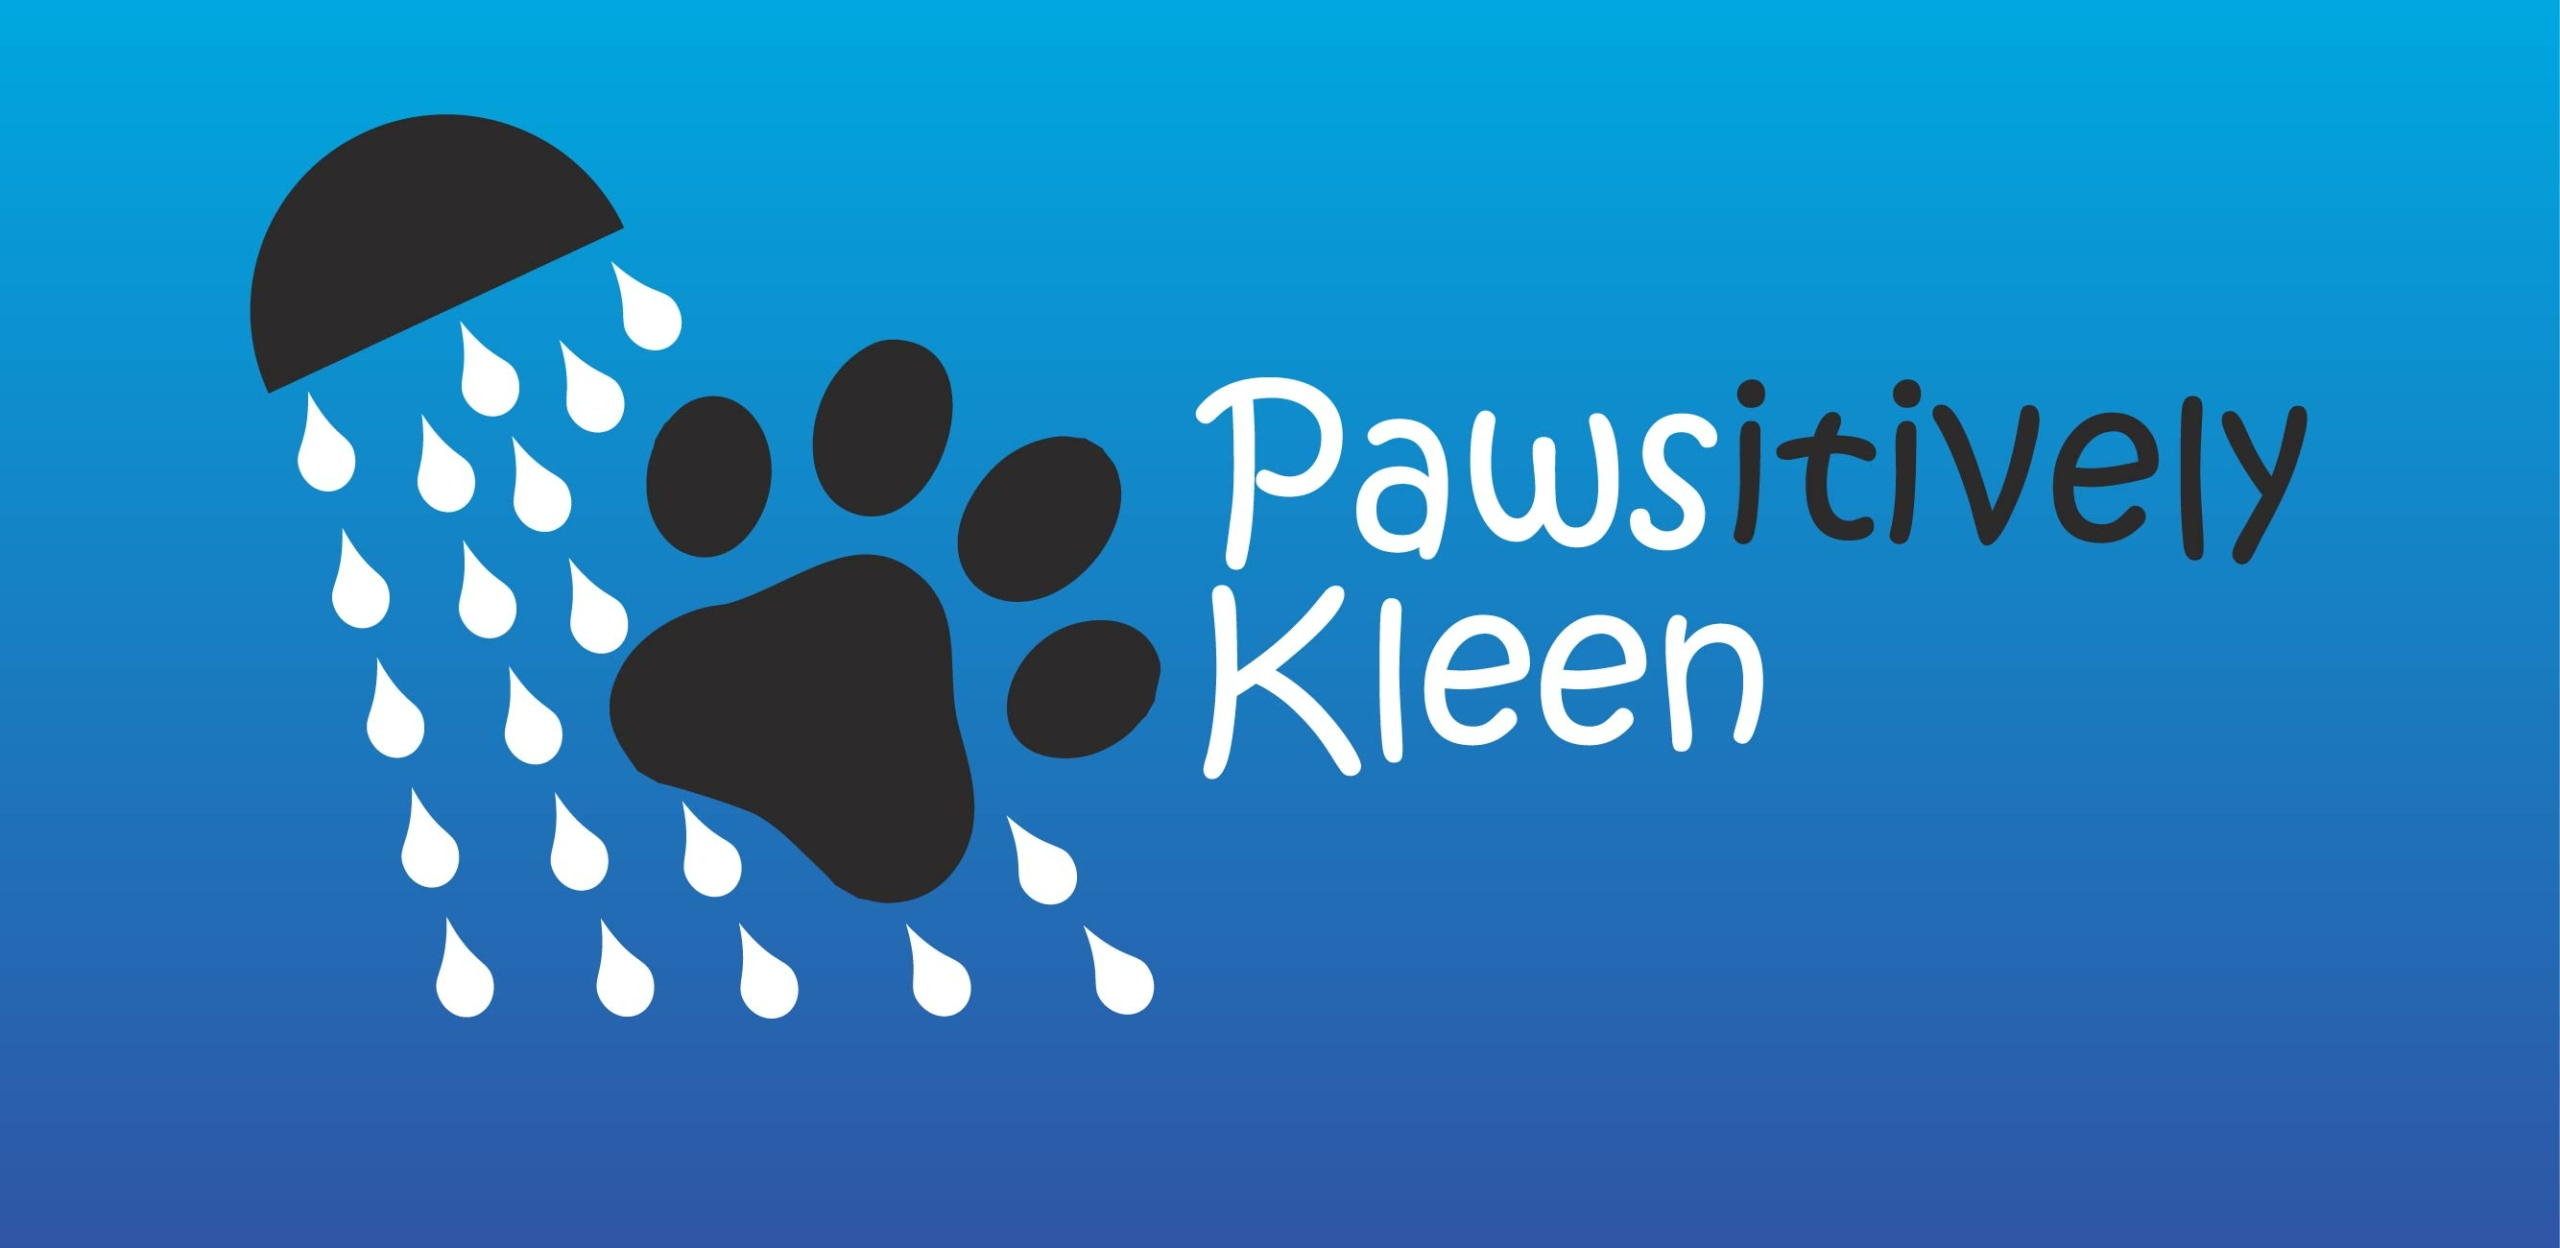 Pawsitively Kleen